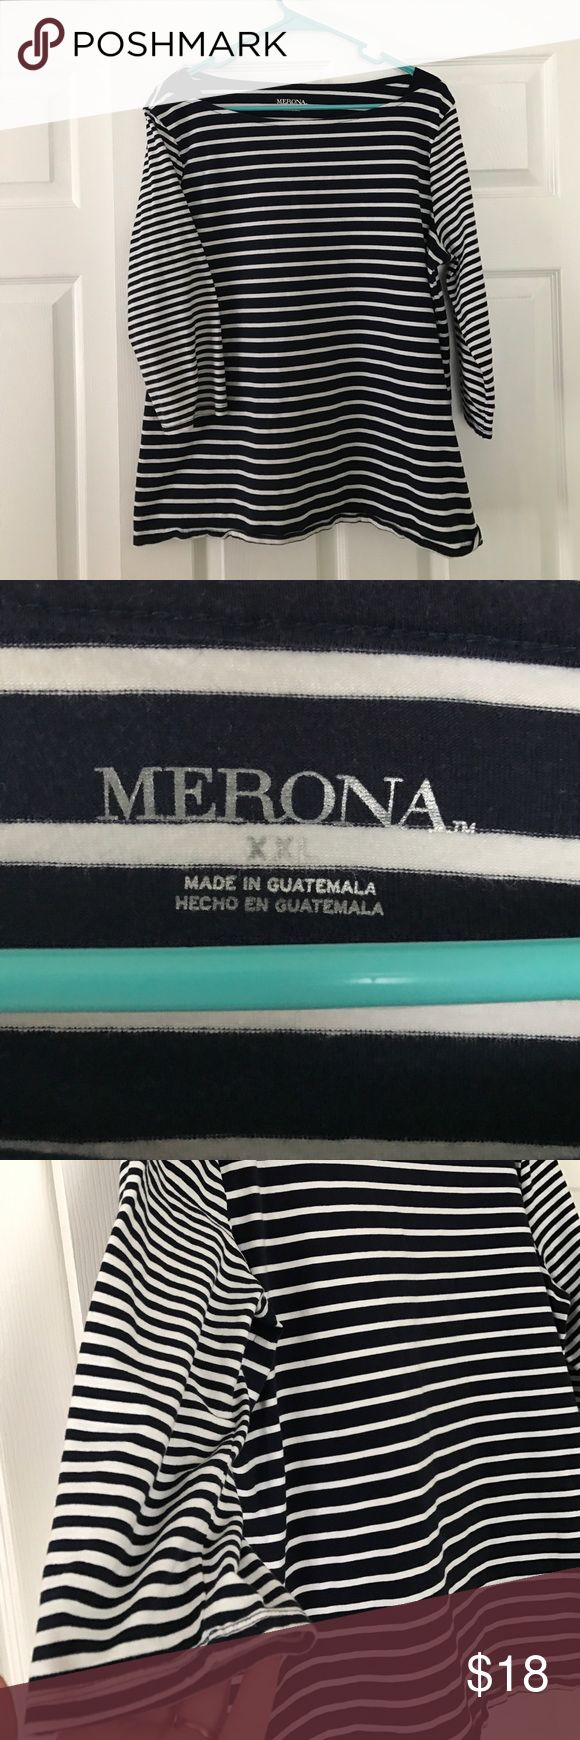 Merona Plus Size Nautical Top Fierce. Classy. Chic. This Merona Top is a gorgeous addition to any wardrobe. Like new condition. Merona Tops